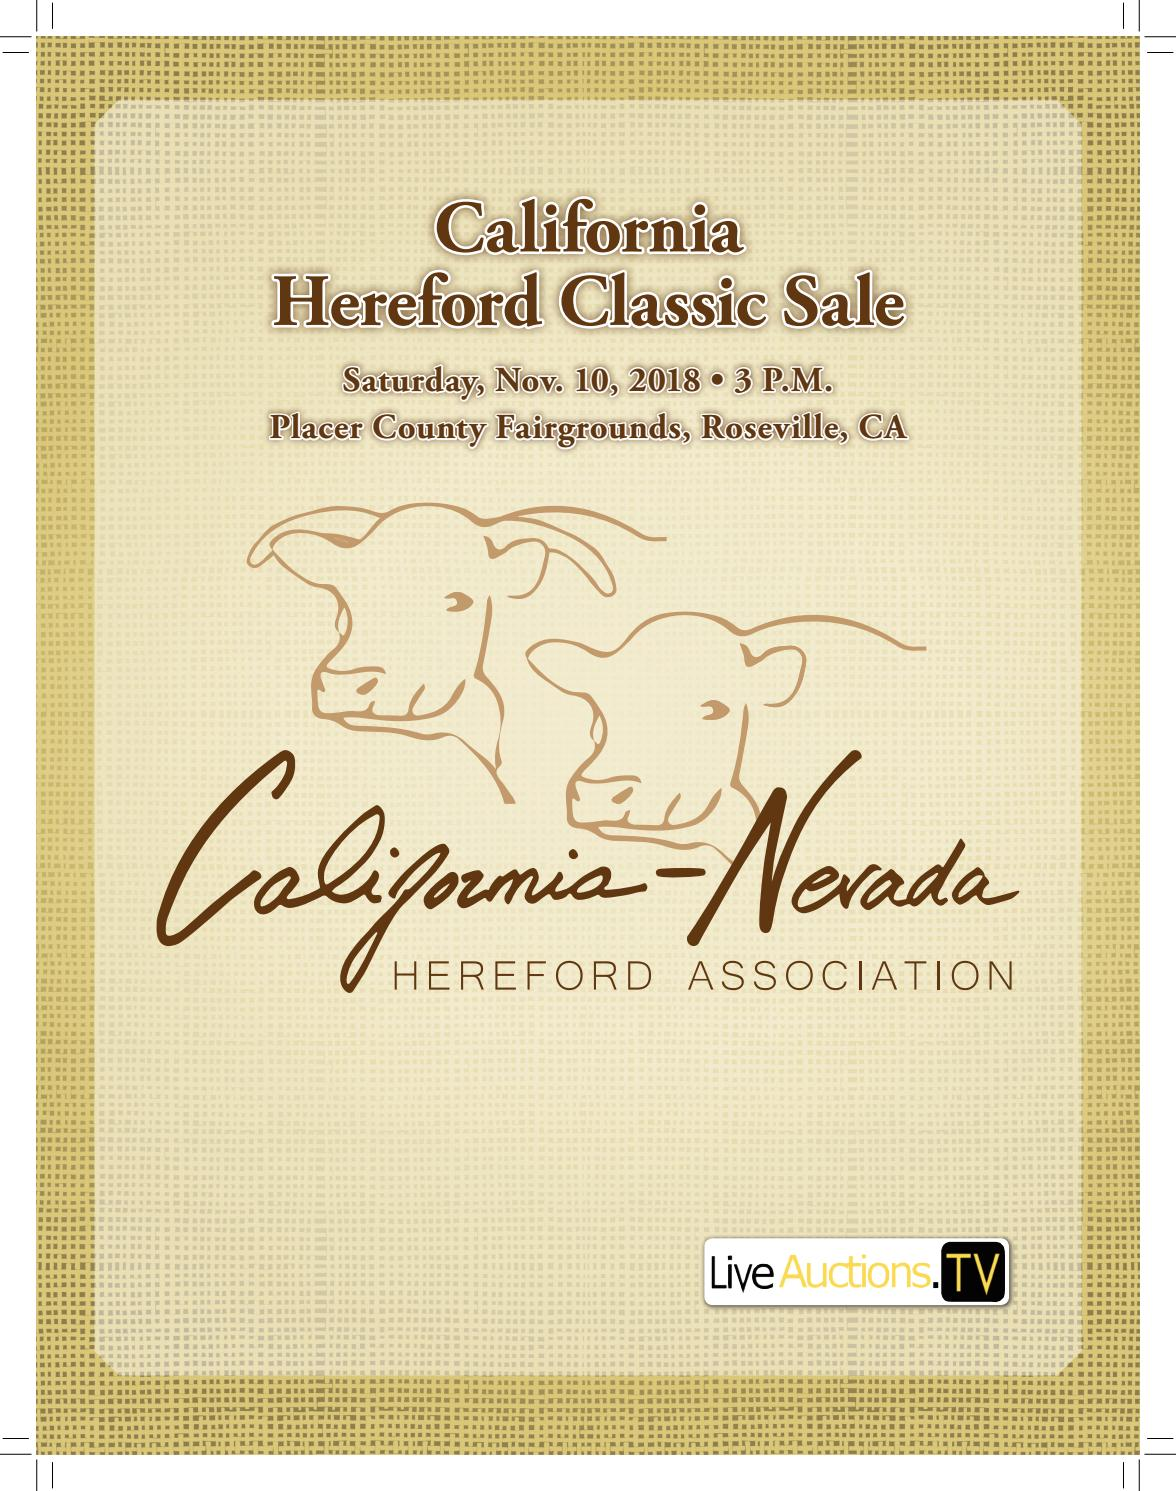 California Hereford Classic Sale By American Hereford Association